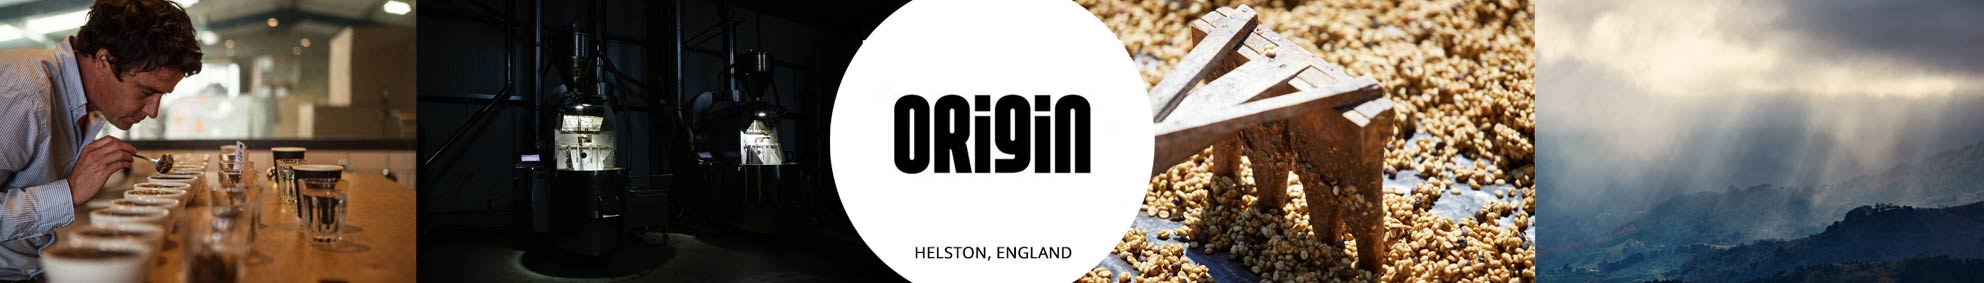 Origin Coffee Speciality Roaster UK Coffee Subscription